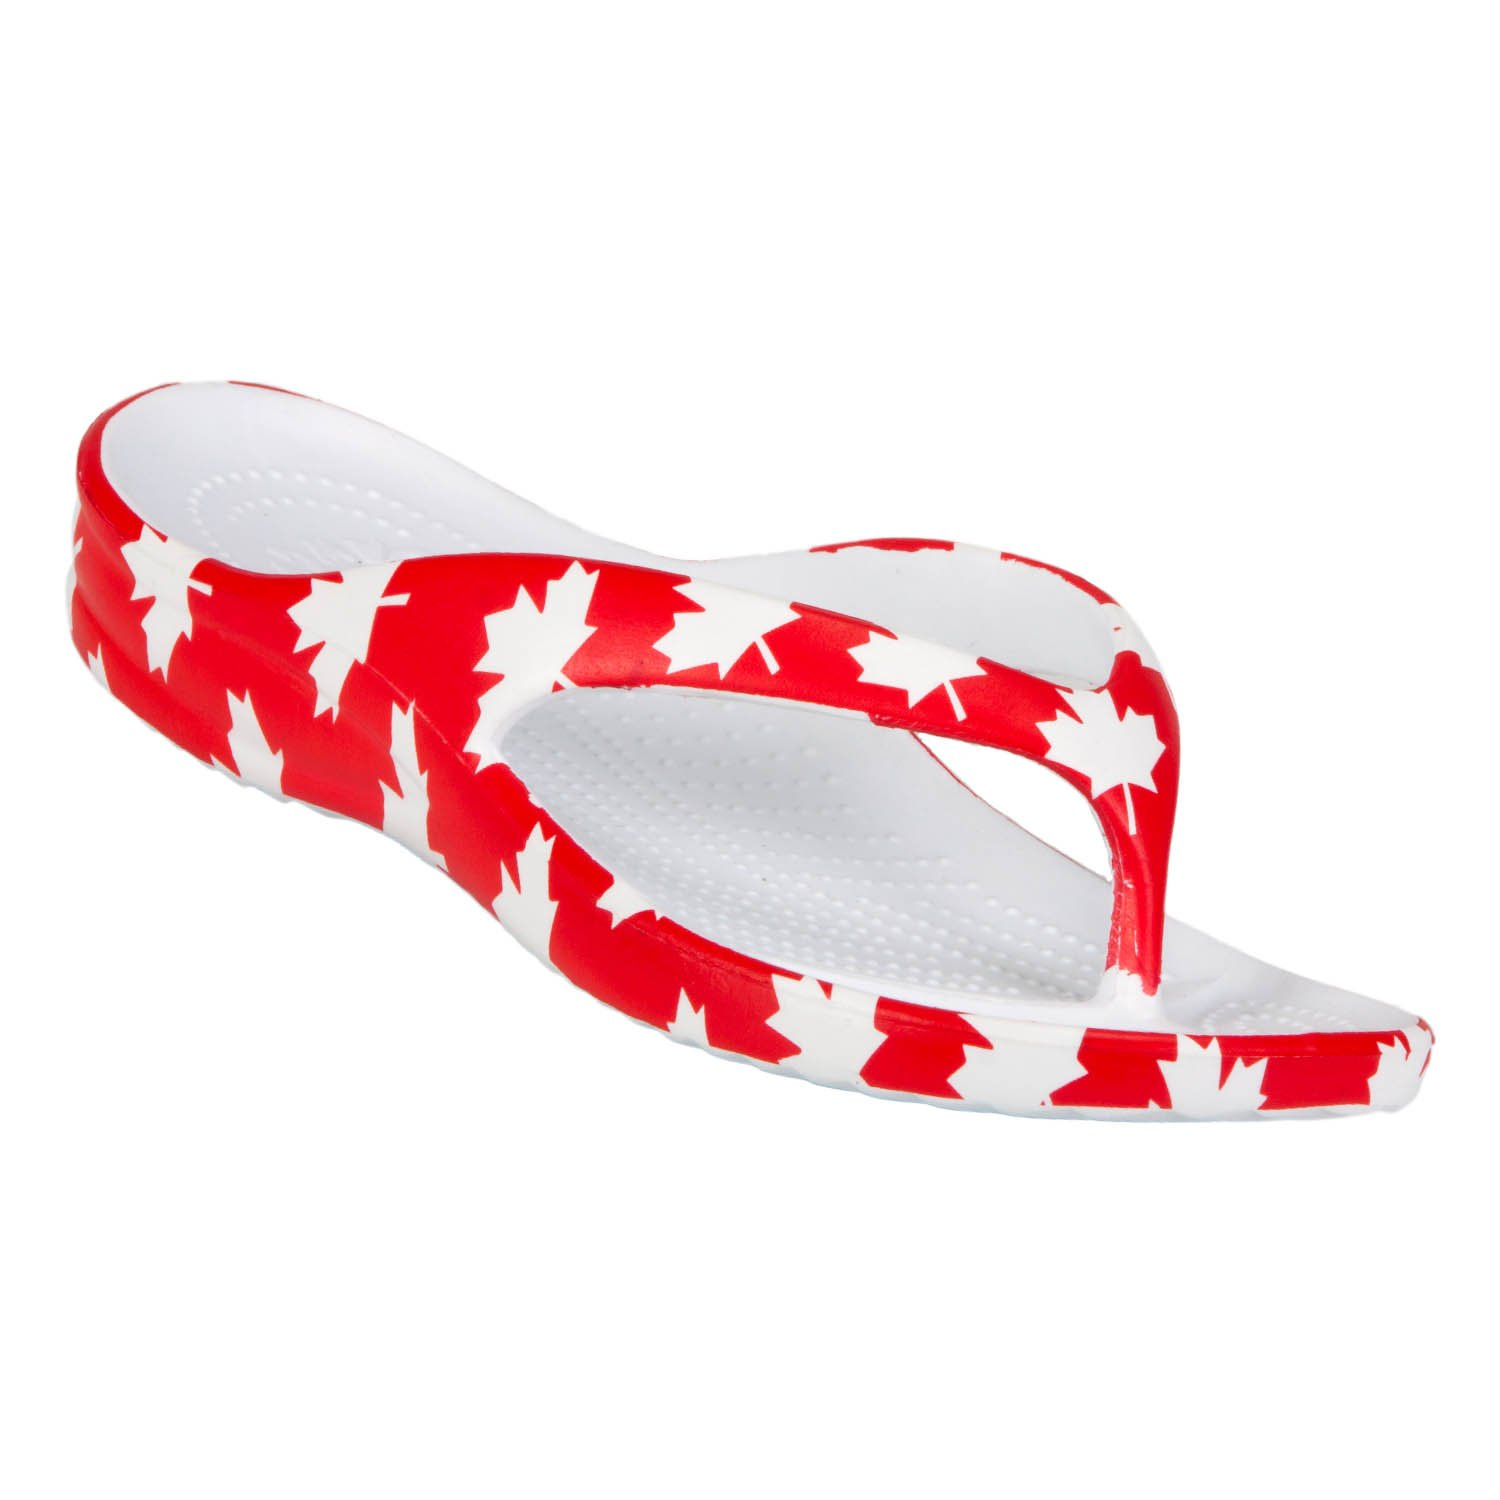 0a84567a0 Galleon - DAWGS Womens  Flip Flops Canada (Red White) Size 11